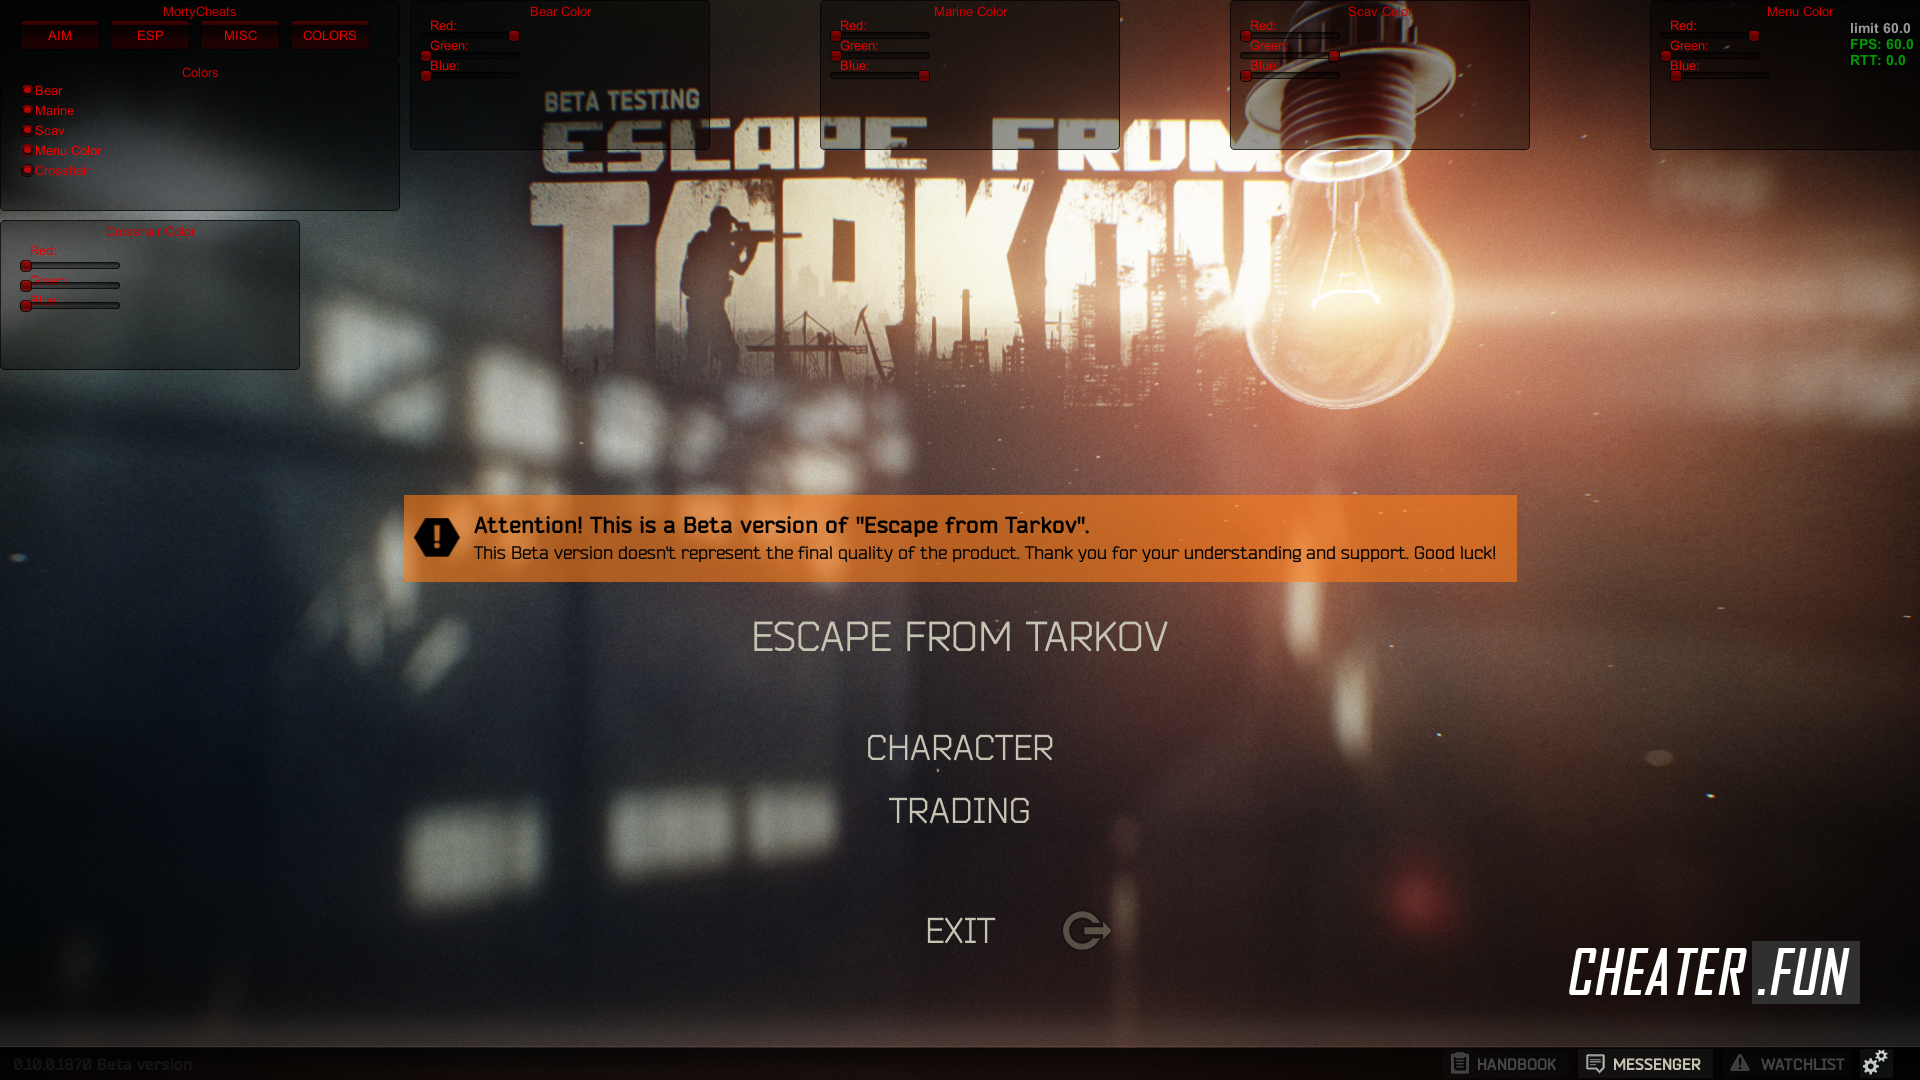 Download free cheat for Escape from Tarkov MortyCheats EFT - AIM/ESP